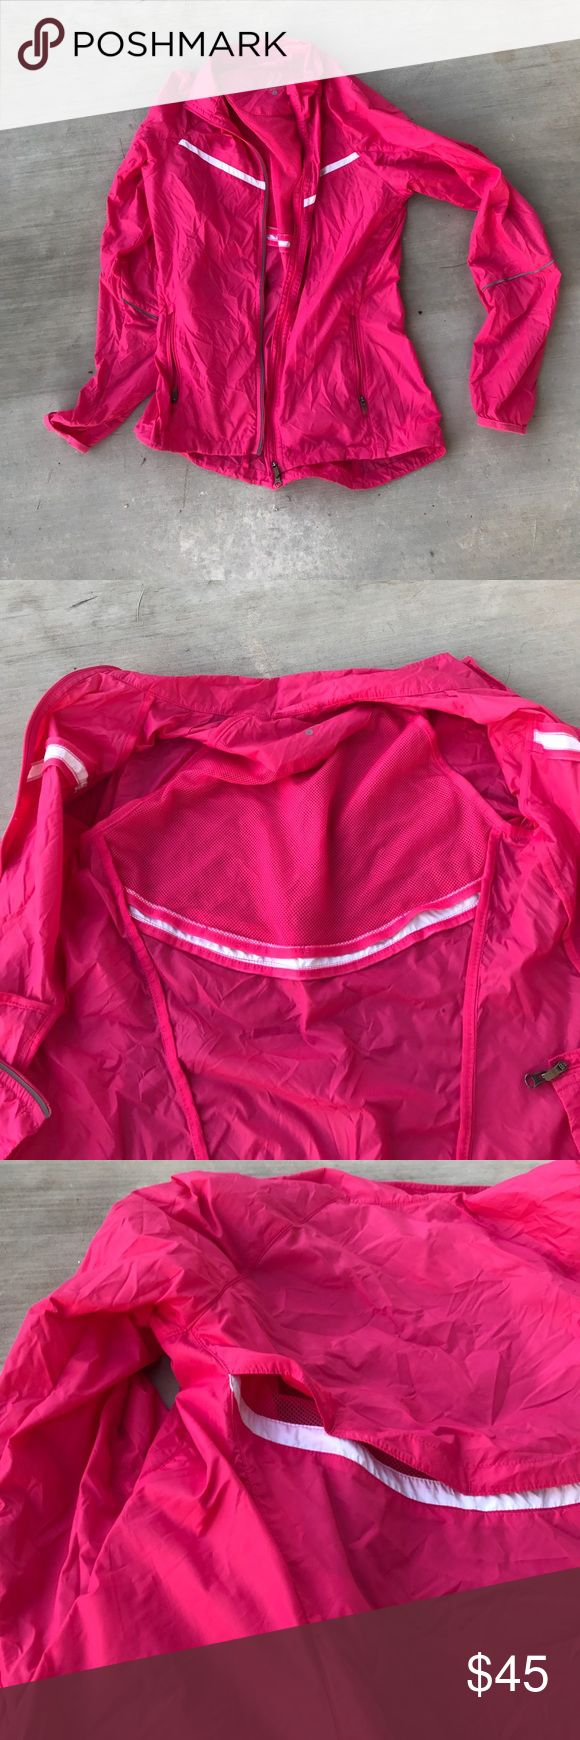 Hot pink Nike running jacket Super light weight waterproof running jacket. Mesh linking on the inside for your back and a few small openings in the back that keep cool. Color is a little more neon than the picture shows. Feels like a parachute material and is perfect for cooler temps. Two zippered side pockets and full zipper down the front. Excellent condition only worn a few times. Nike Jackets & Coats Utility Jackets